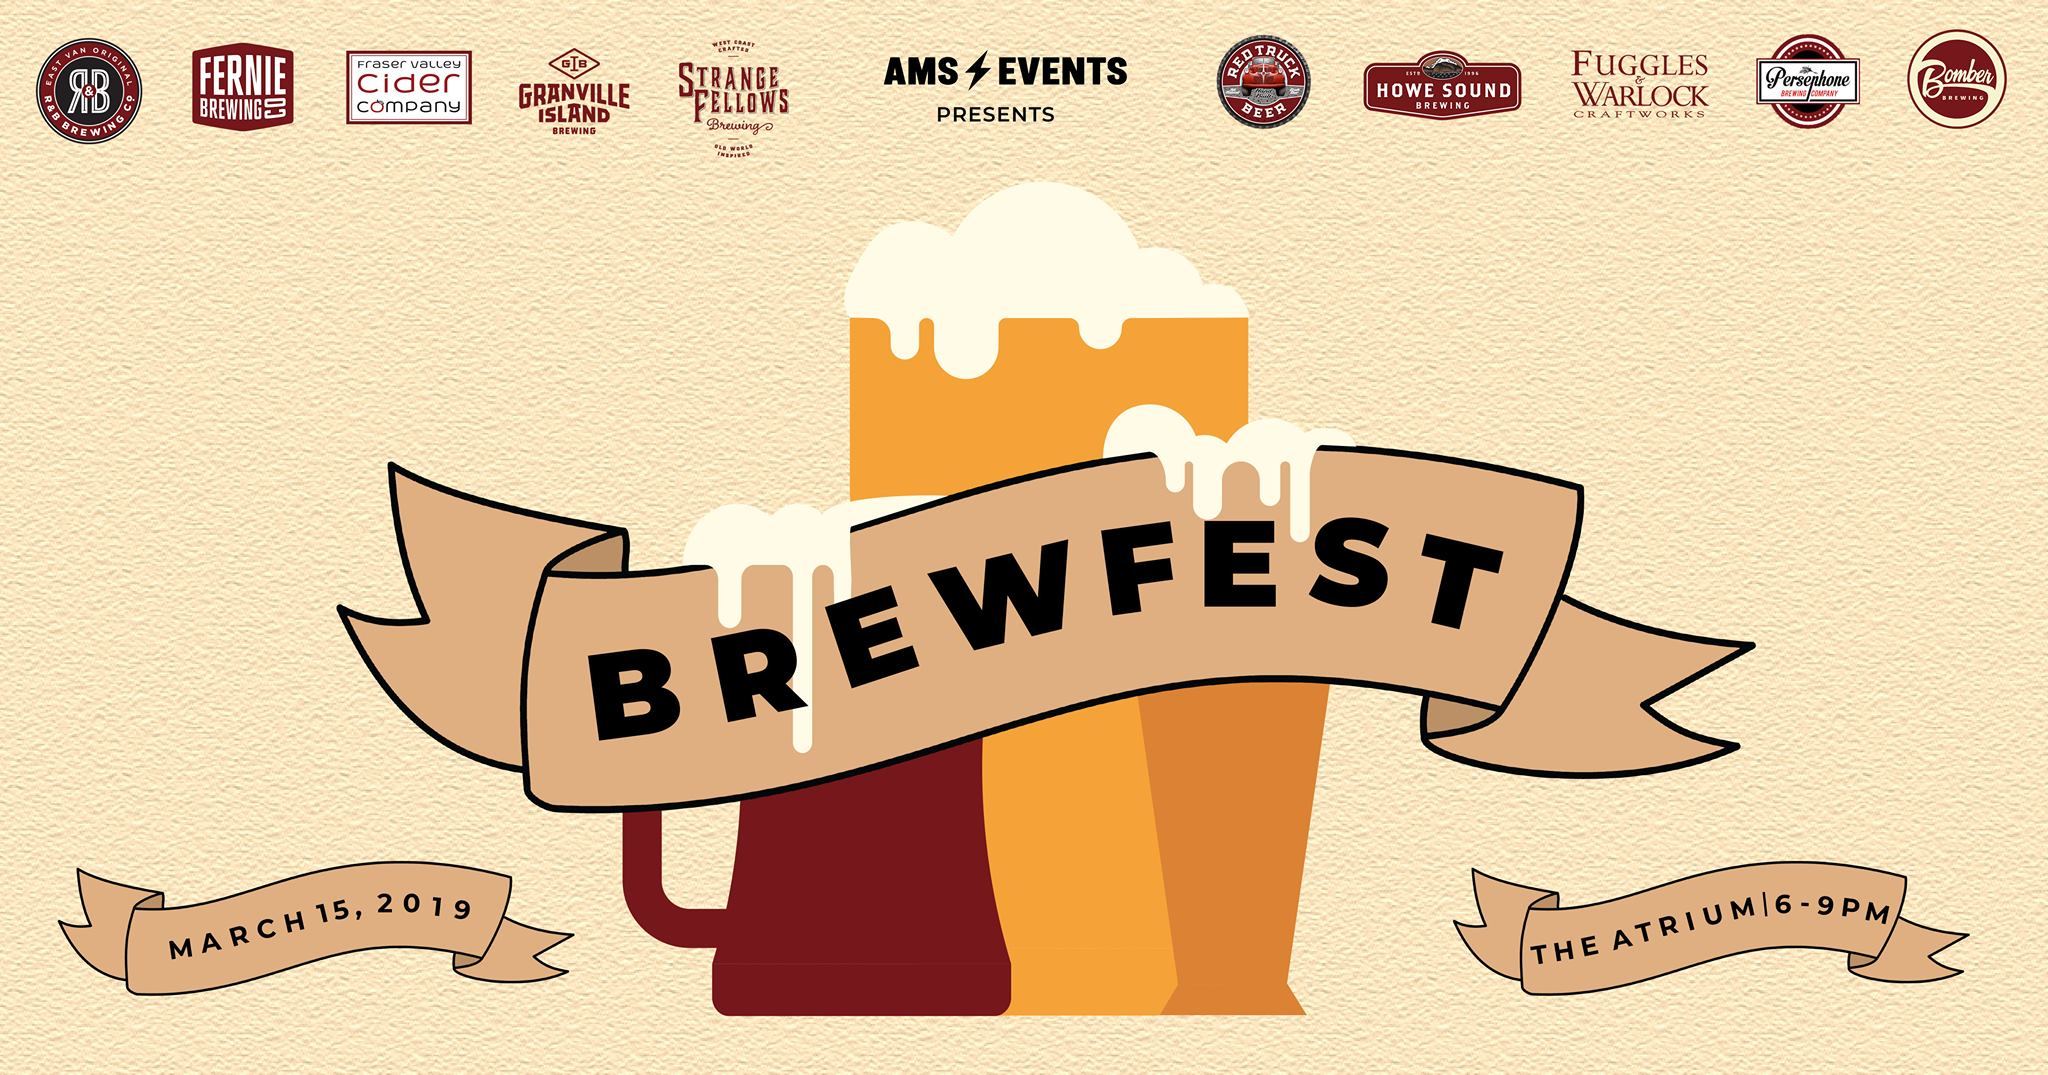 AMS Events Presents: Brewfest